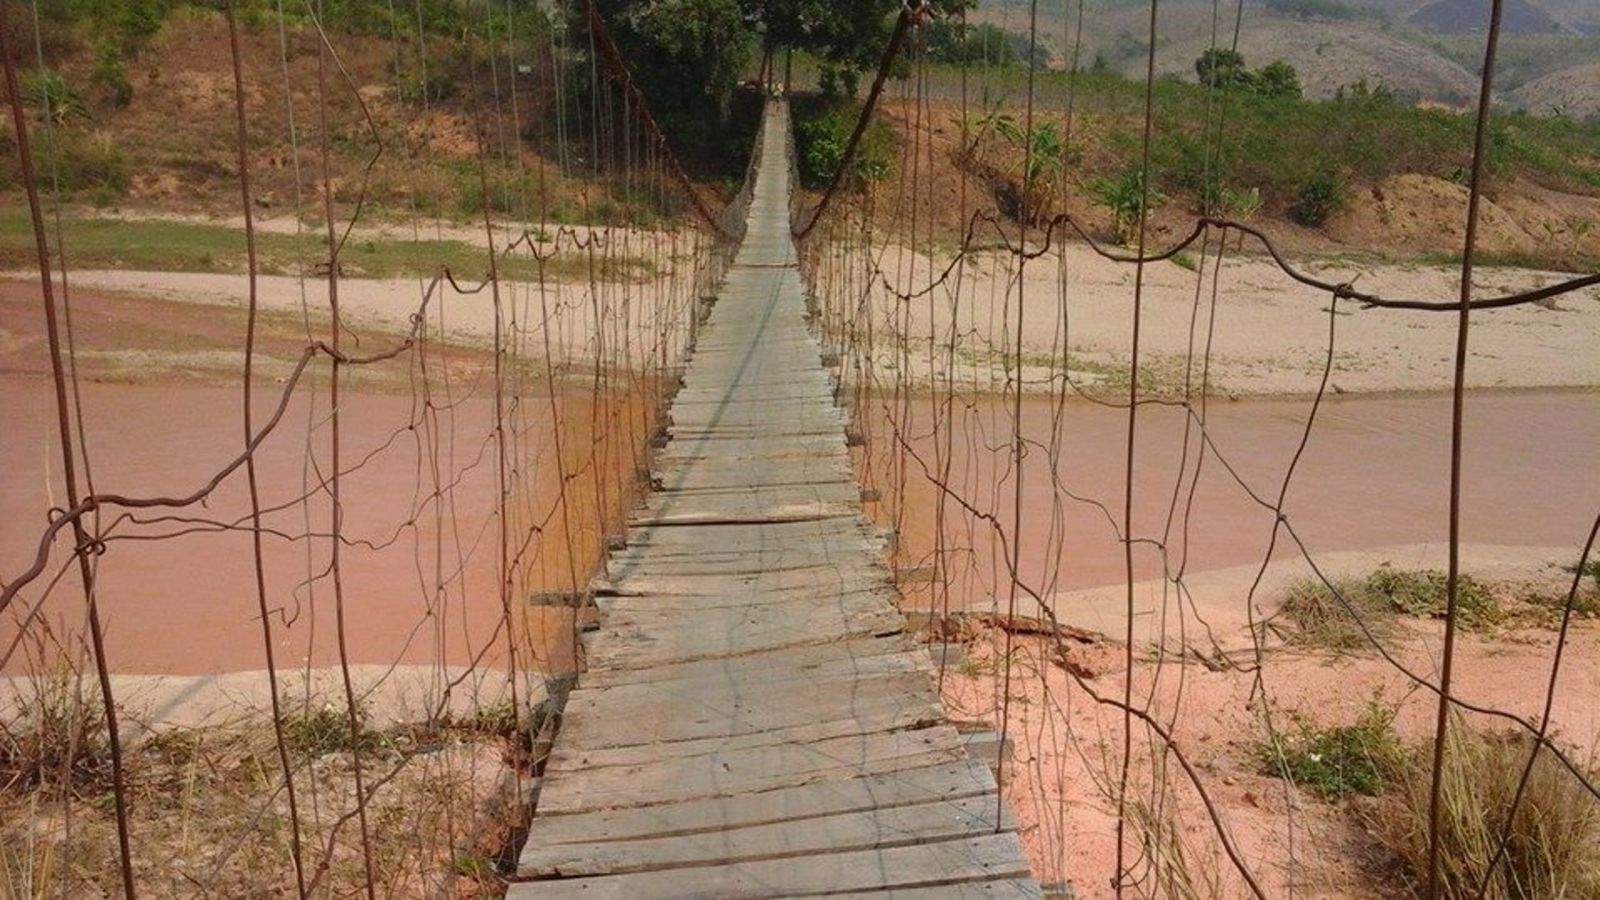 Monkey bridge